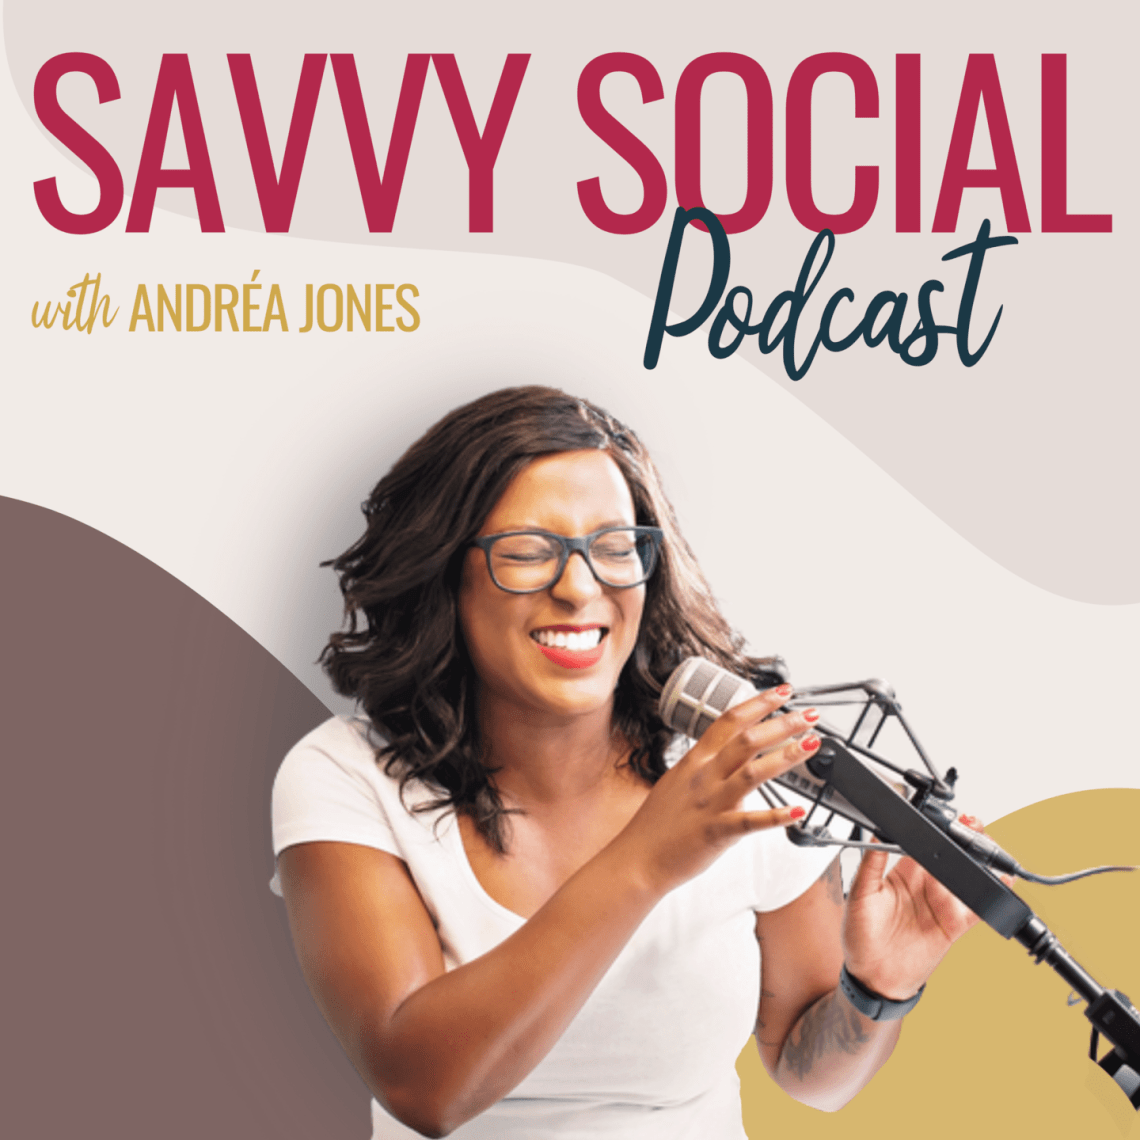 Savvy Social Podcast cover